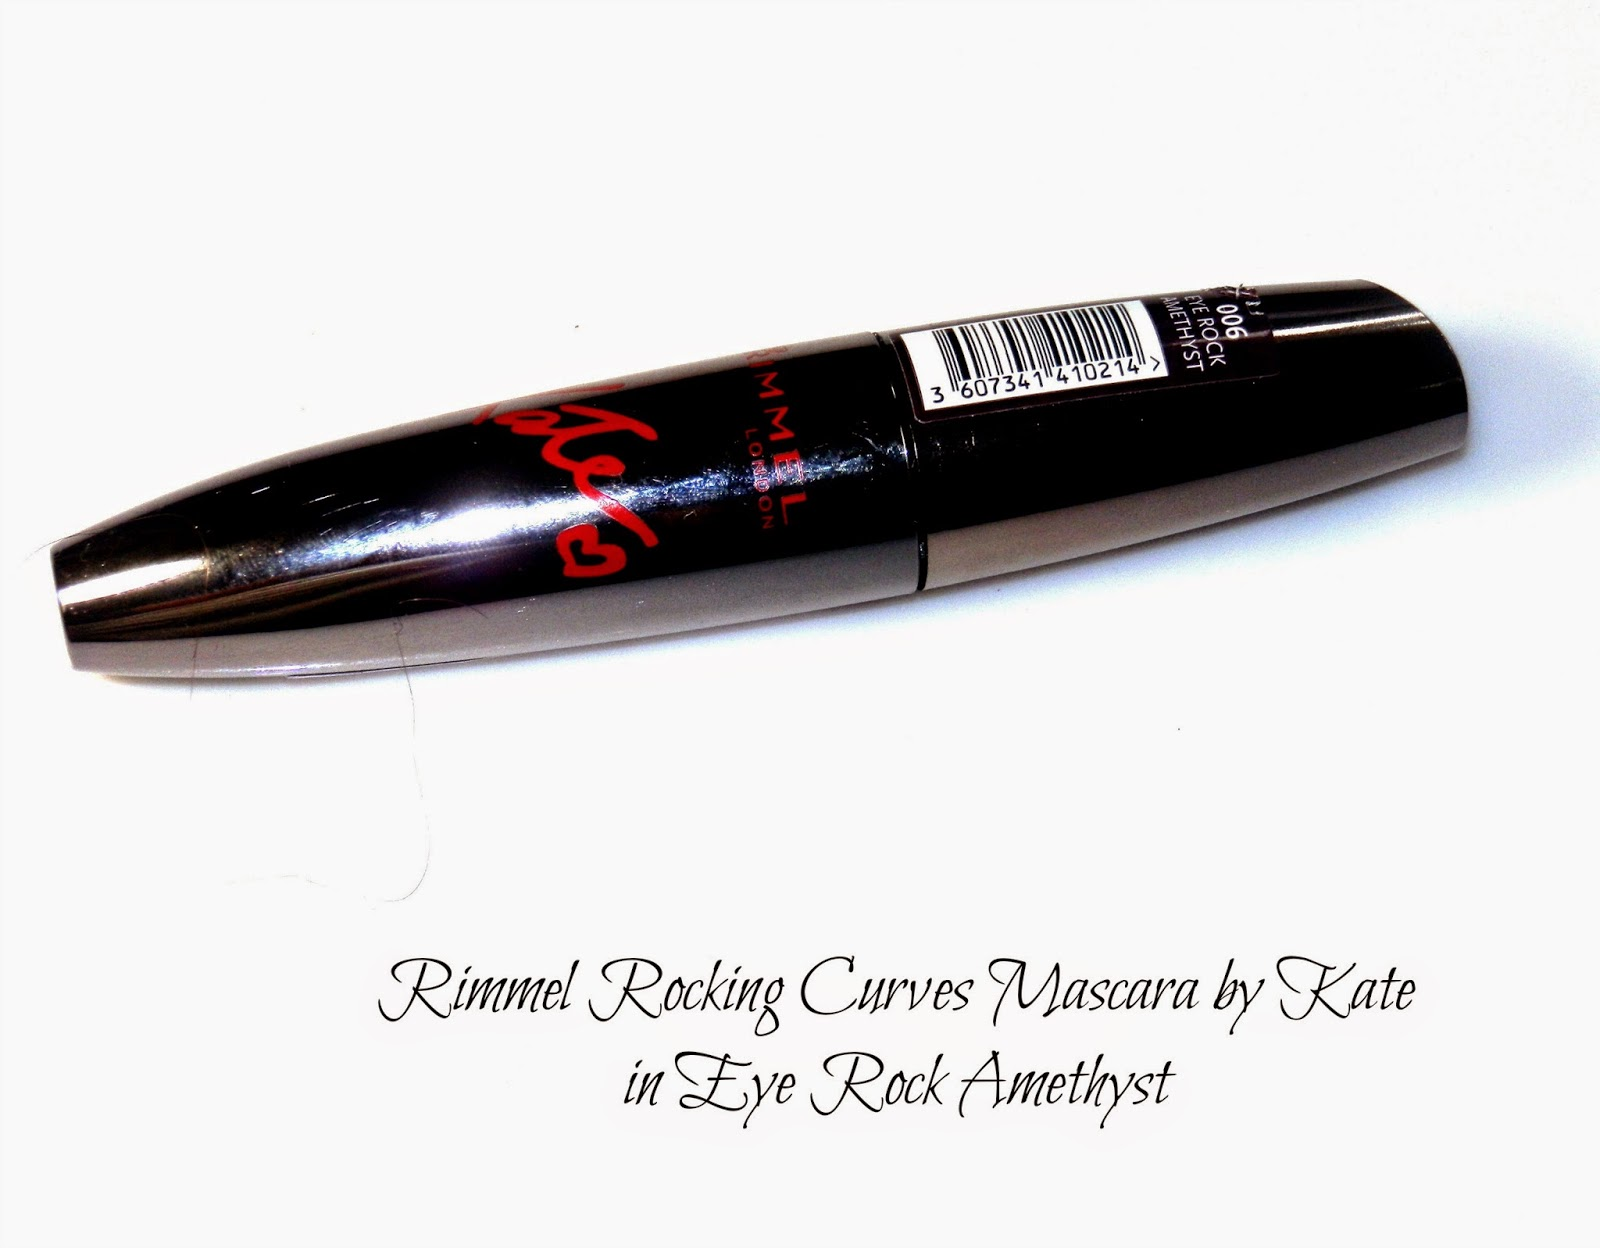 Rimmel Rocking Curves Mascara by Kate in Eye Rock Amethyst